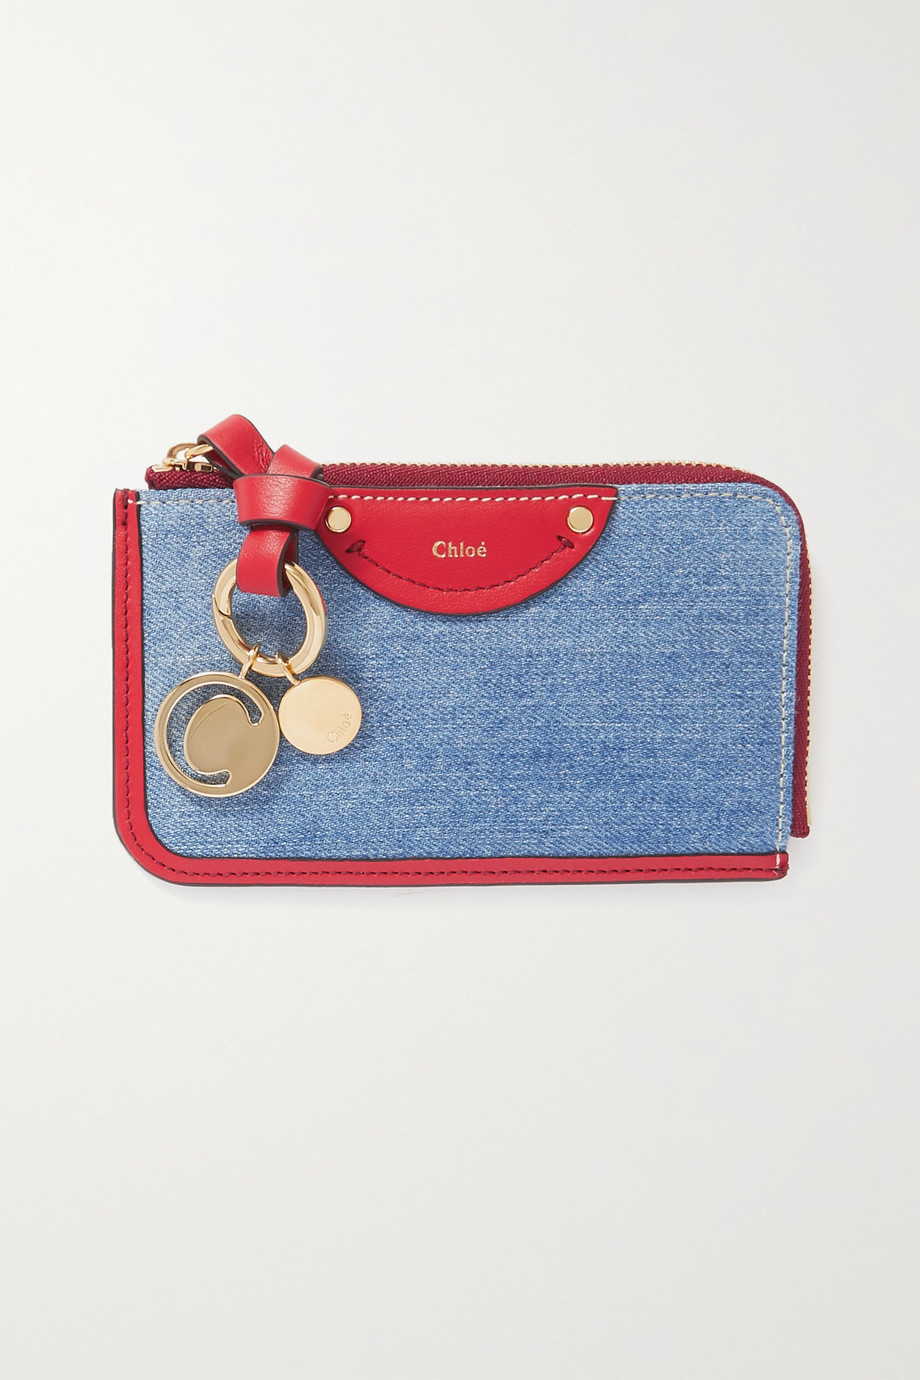 Chloé Alphabet leather and denim wallet